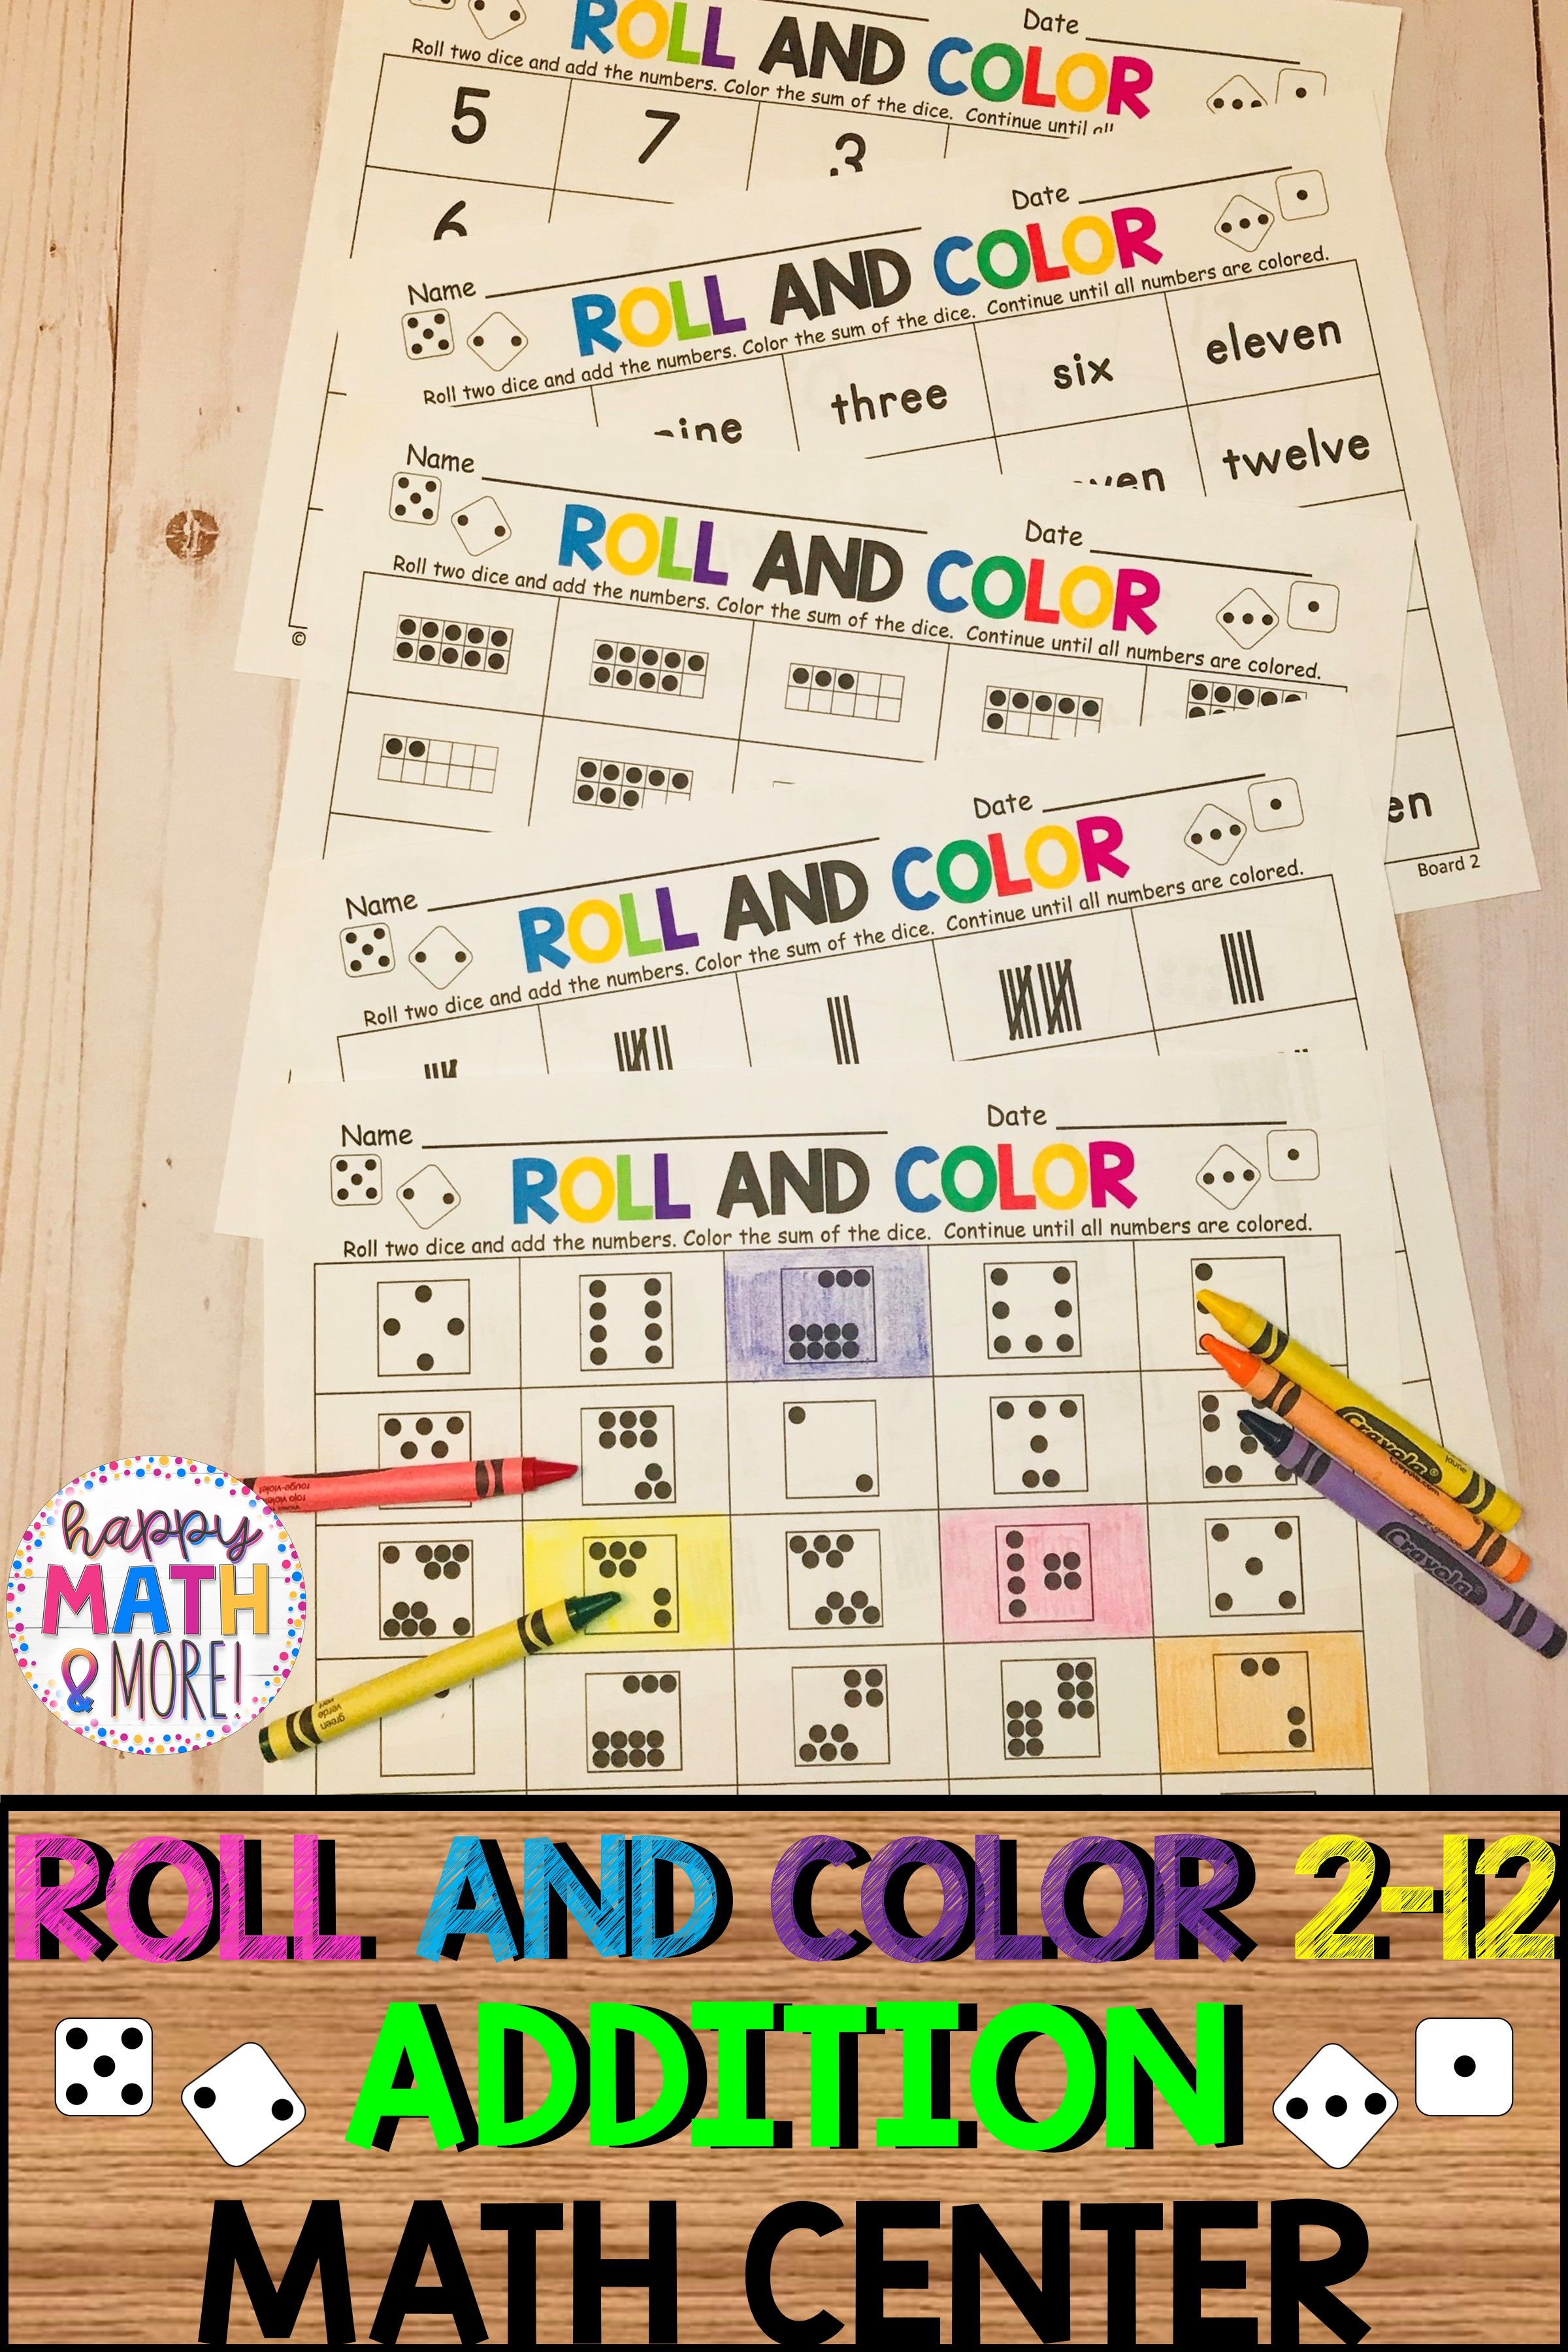 Roll And Color 2 12 Number Sense Addition Math Center